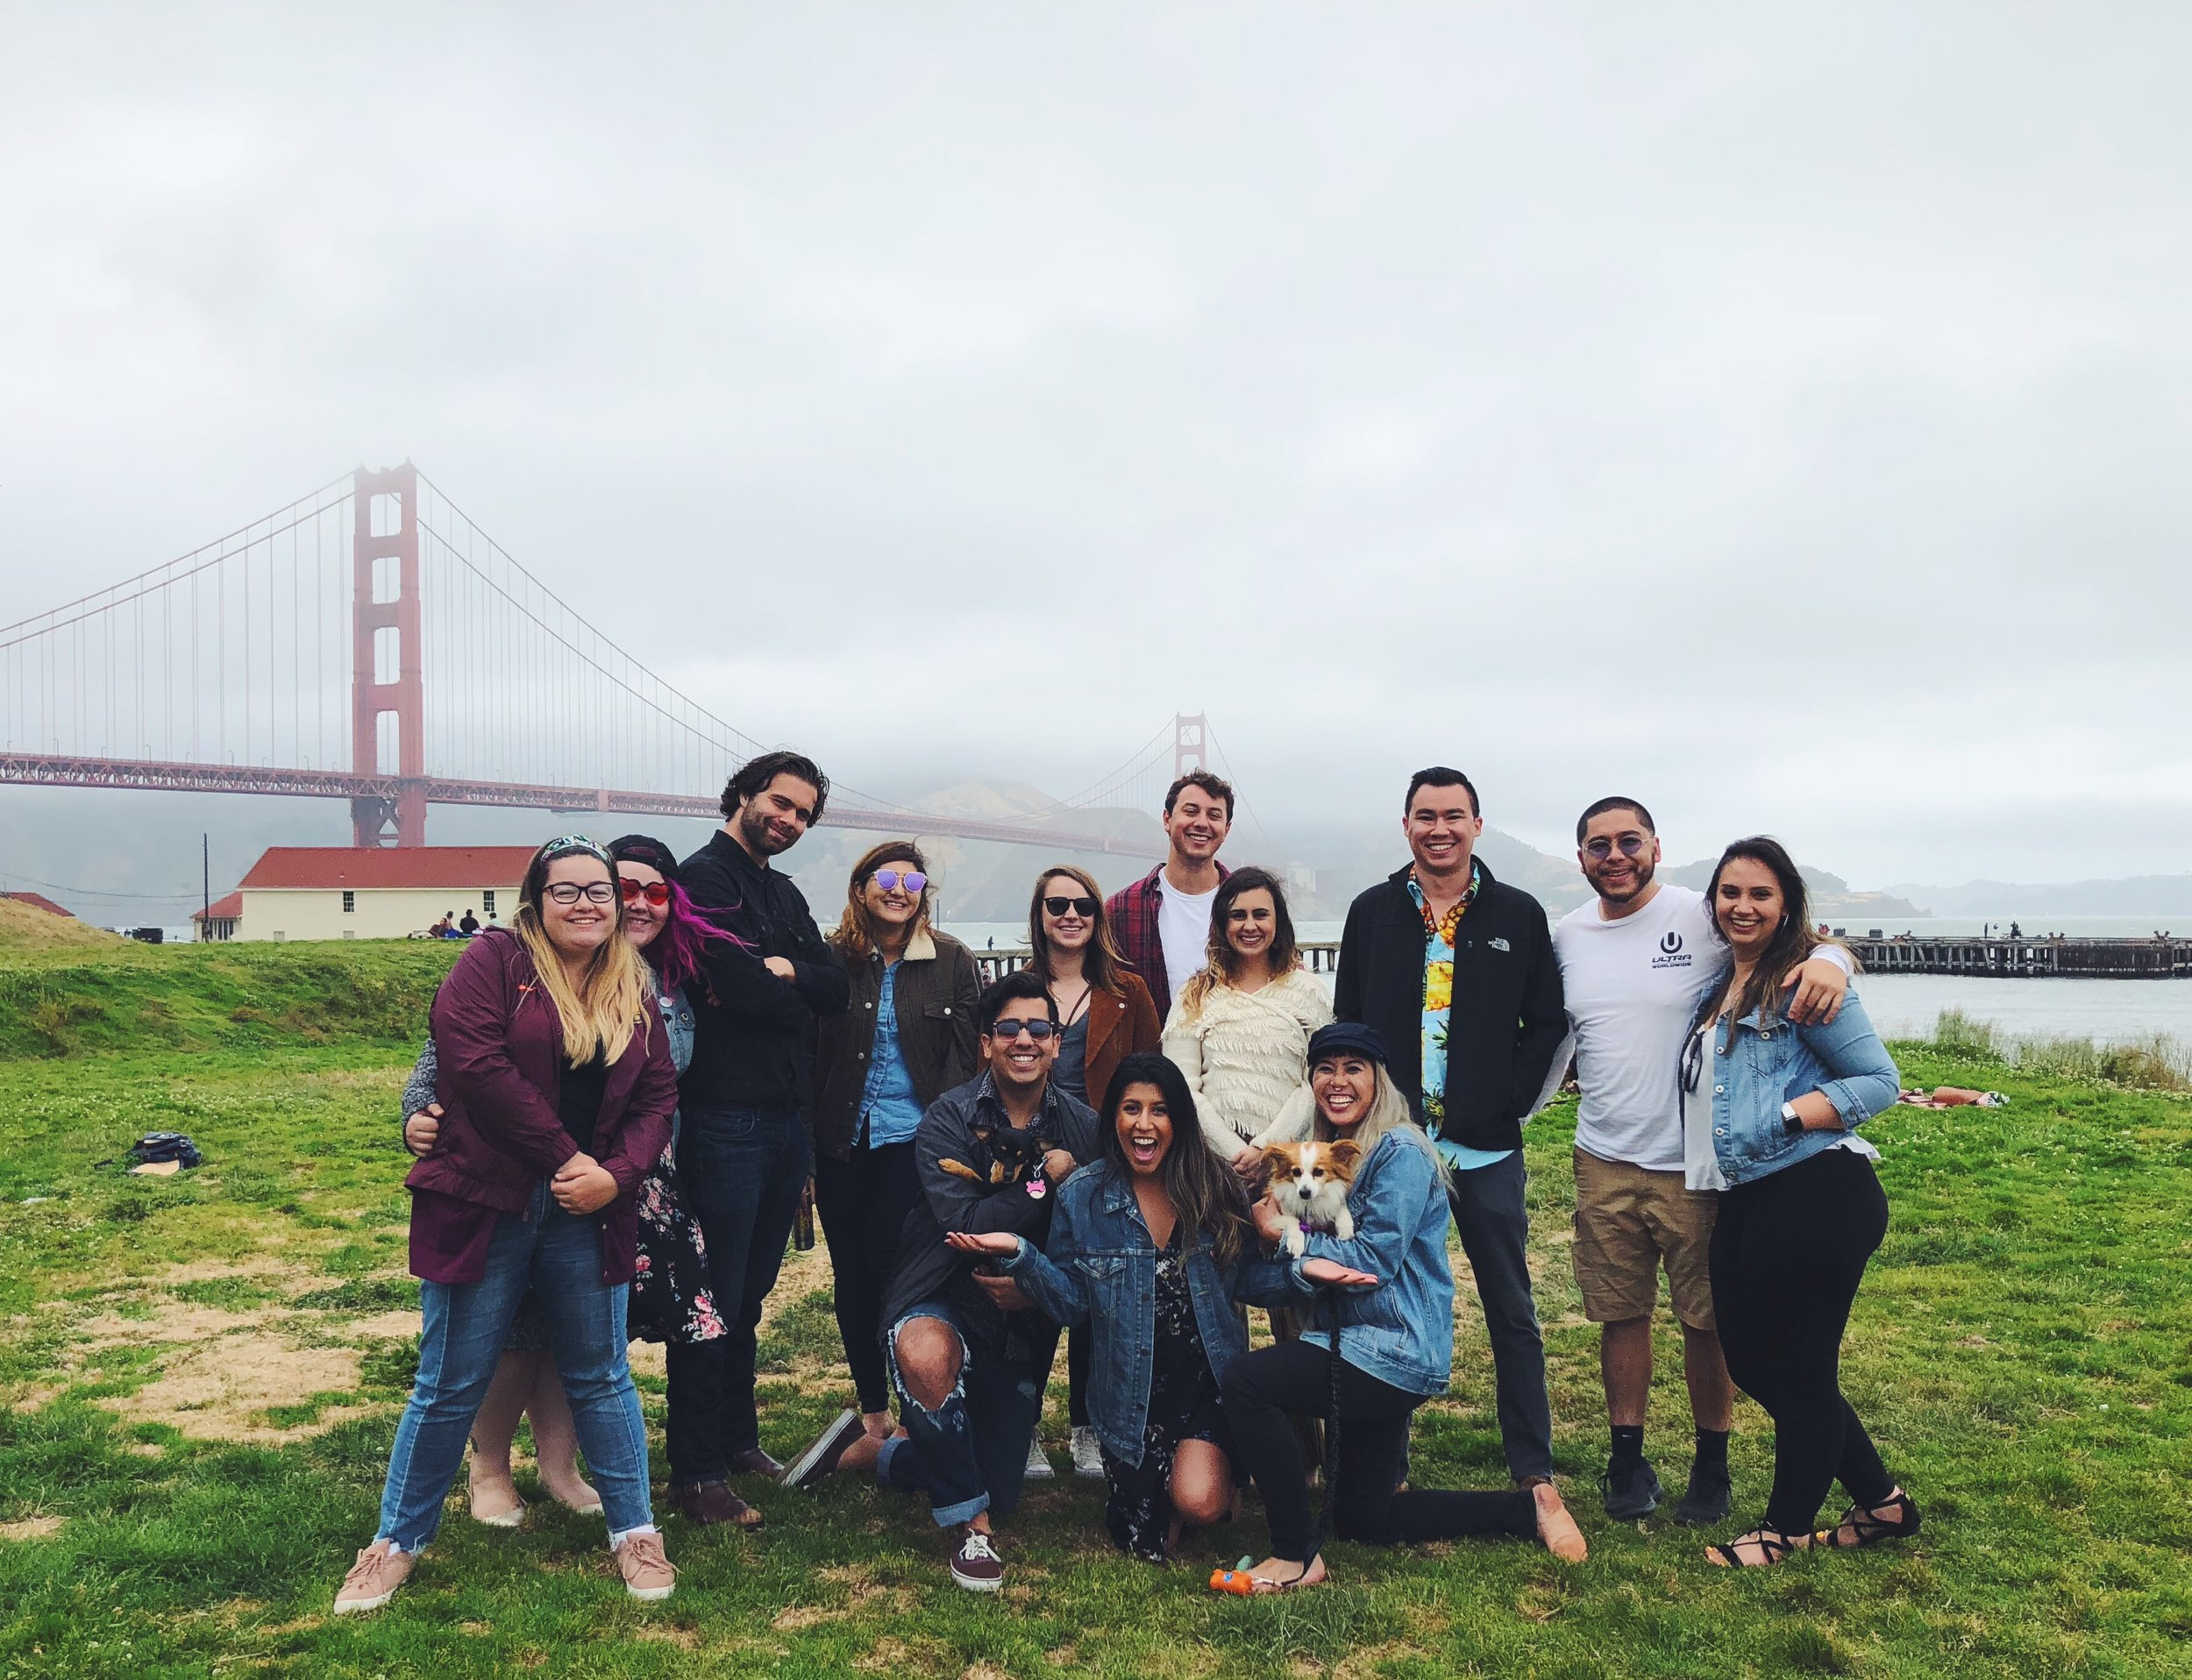 Before Kastania's Big Move, we hosted a Summer Solstice Potluck Party with our friends at Crissy Field near the Golden Gate Bridge.